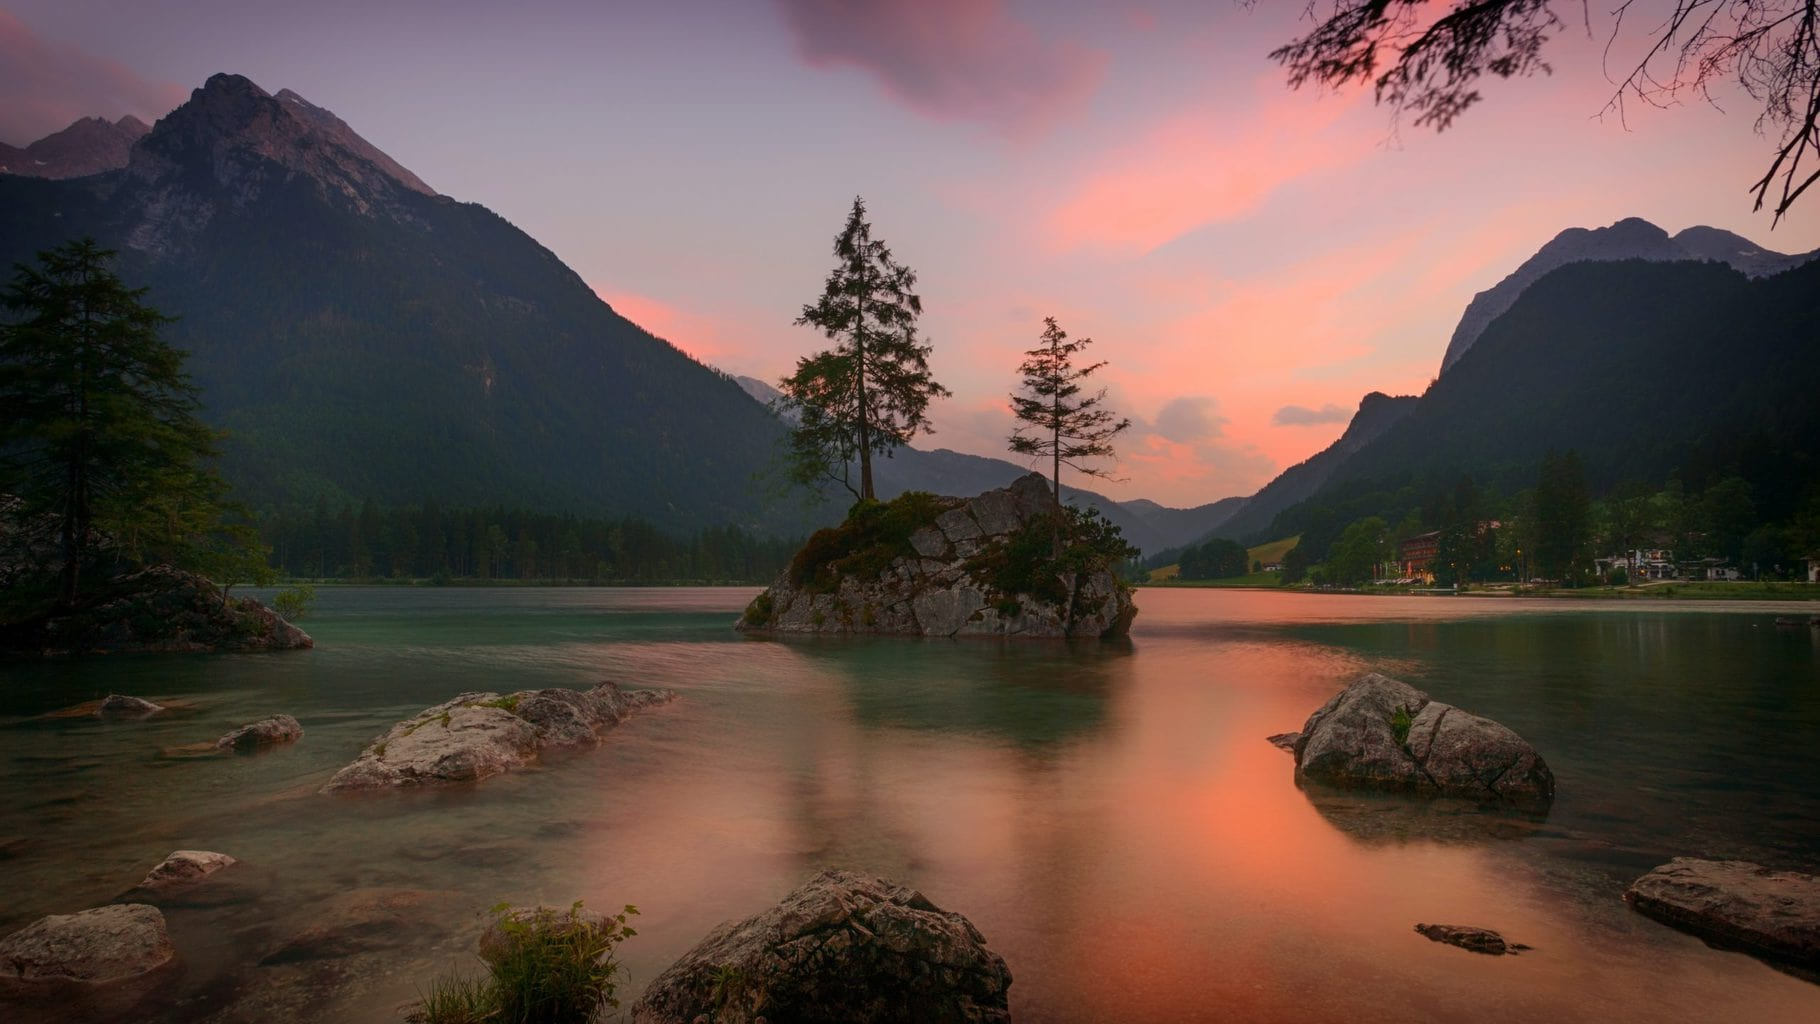 De Koenigssee in Nationaal Park Berchtesgadener Land